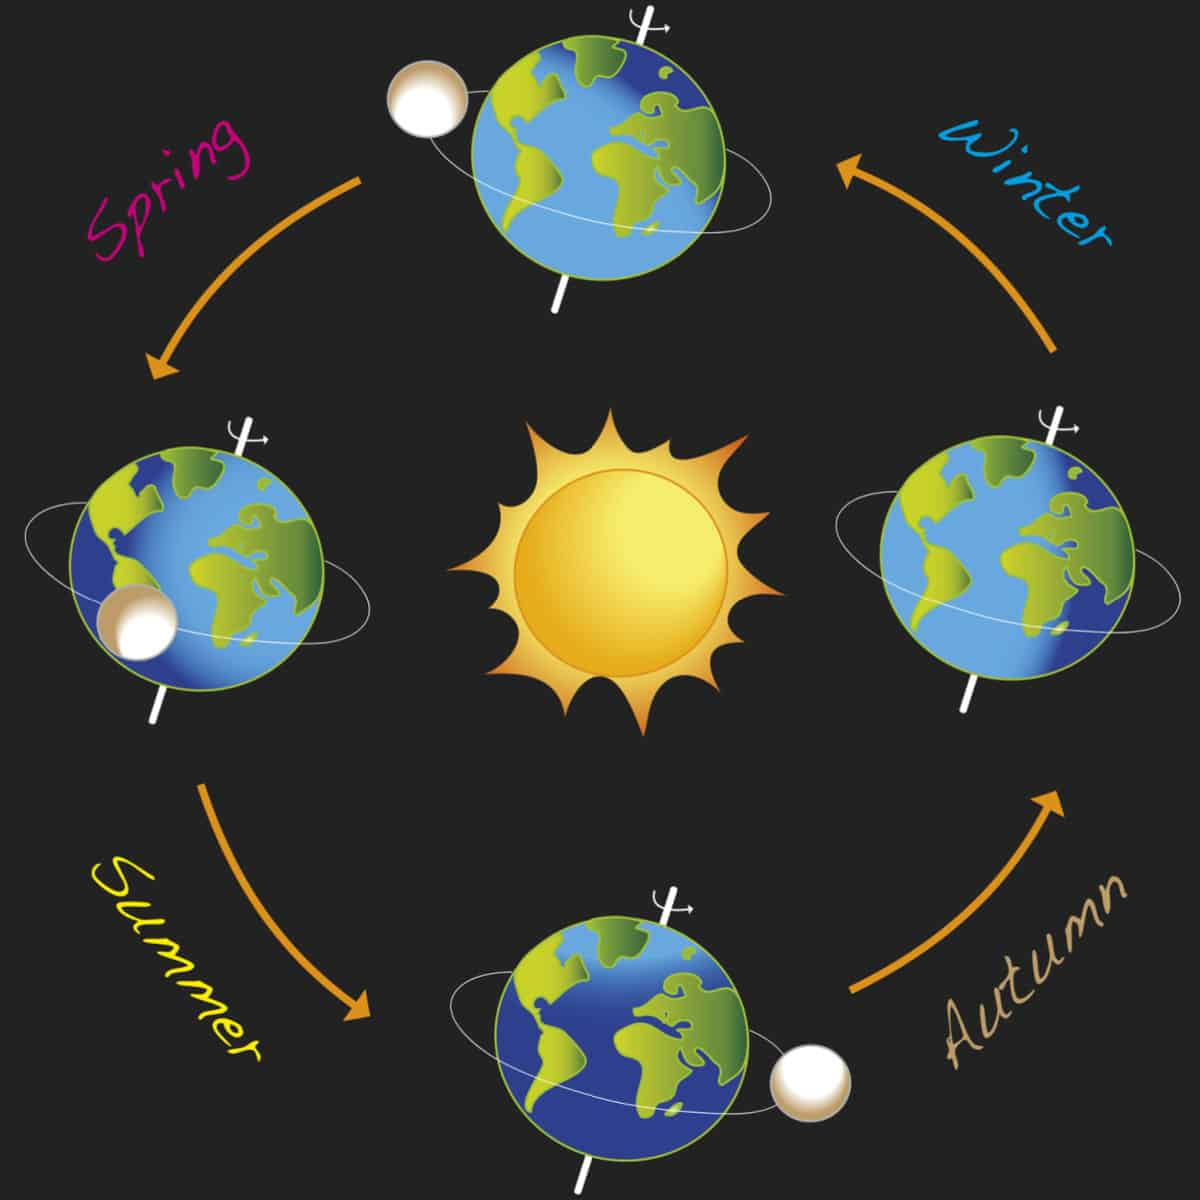 winter solstice graphic of the sun and earth through the solstices and equinoxes